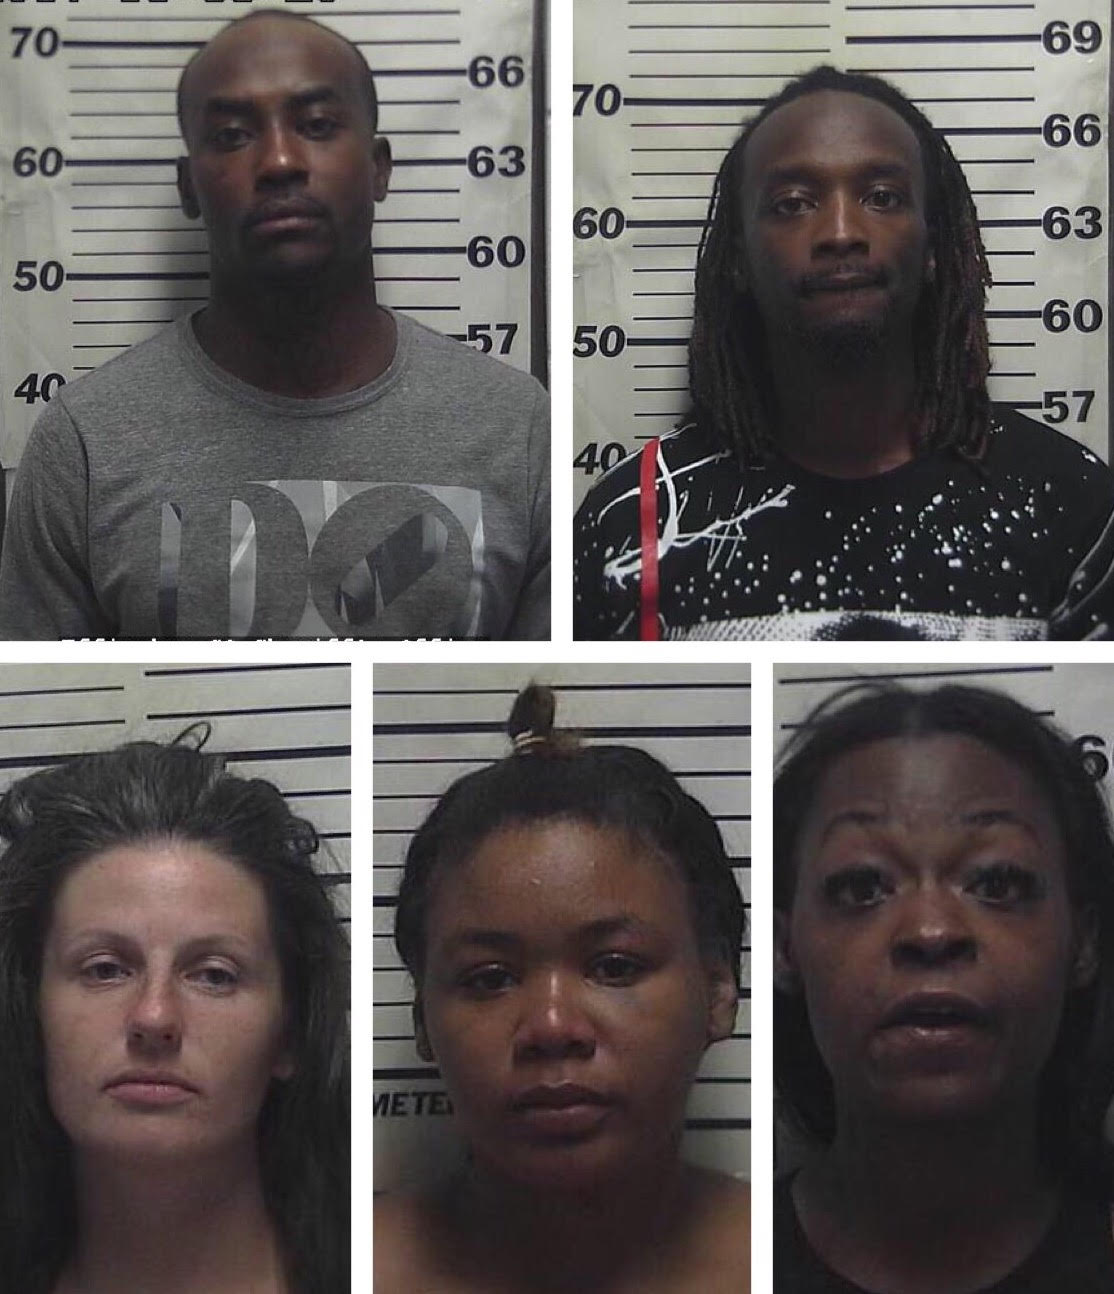 Five People Arrested After Using Counterfeit Bills at Local Businesses